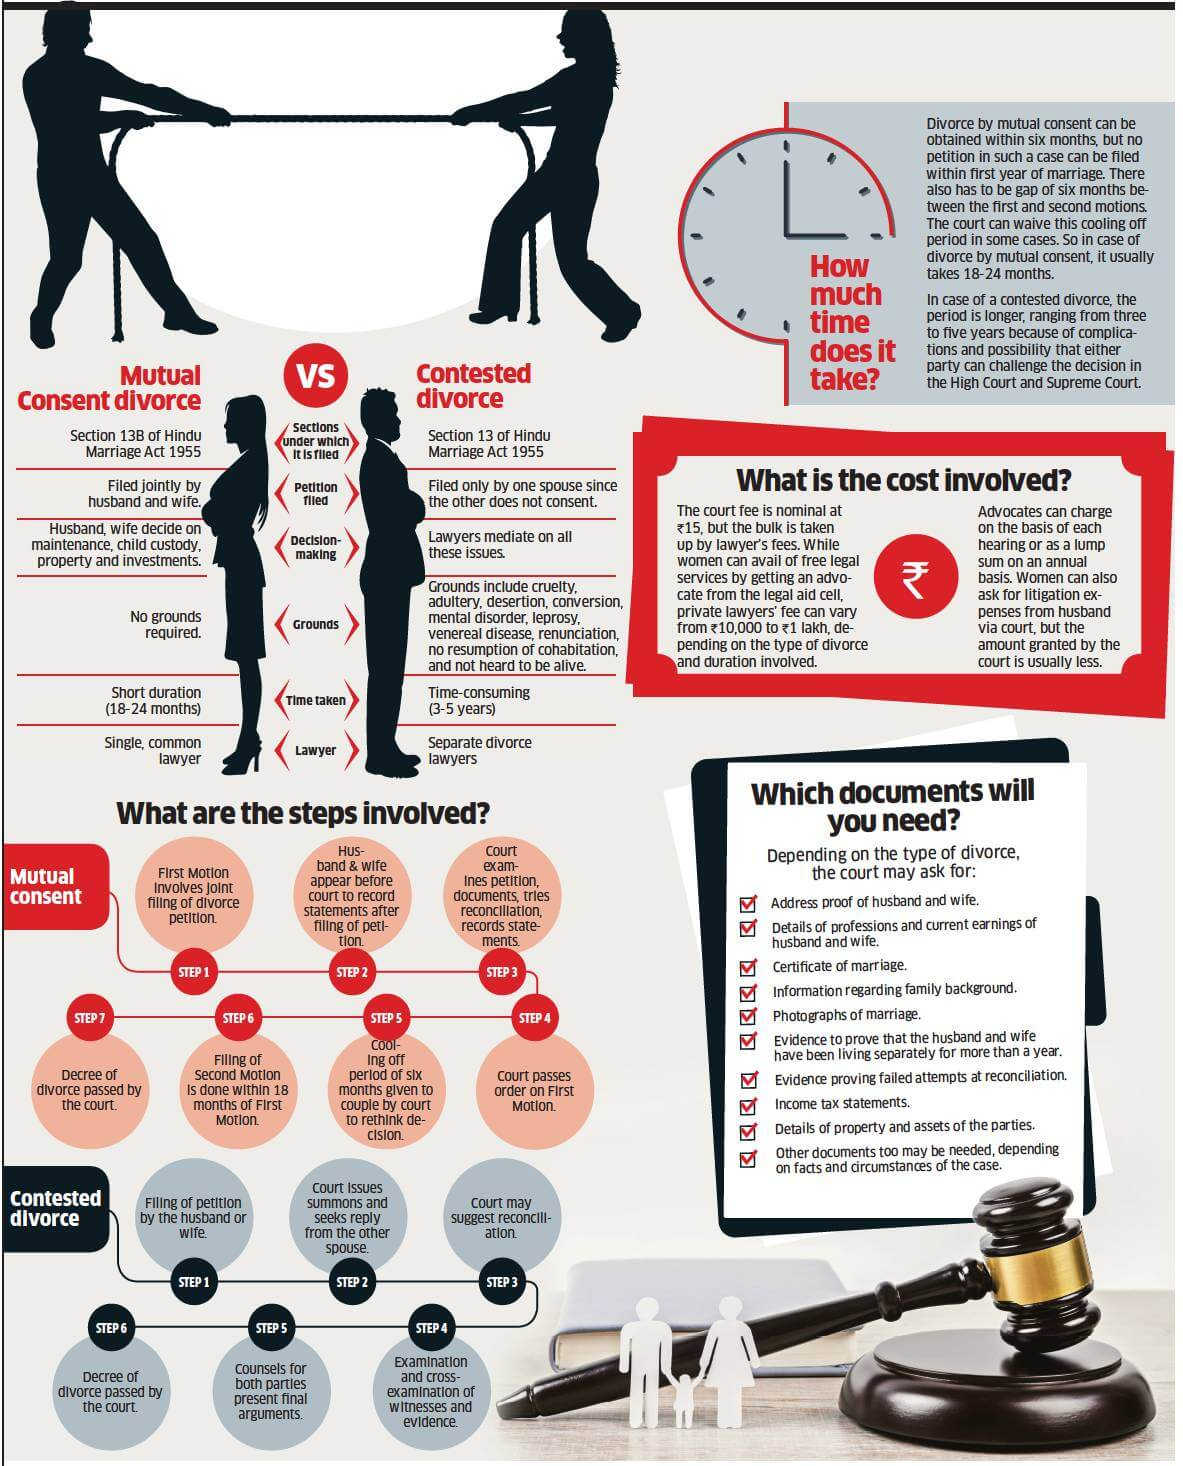 Overview of Divorce in India Mutual and Contested